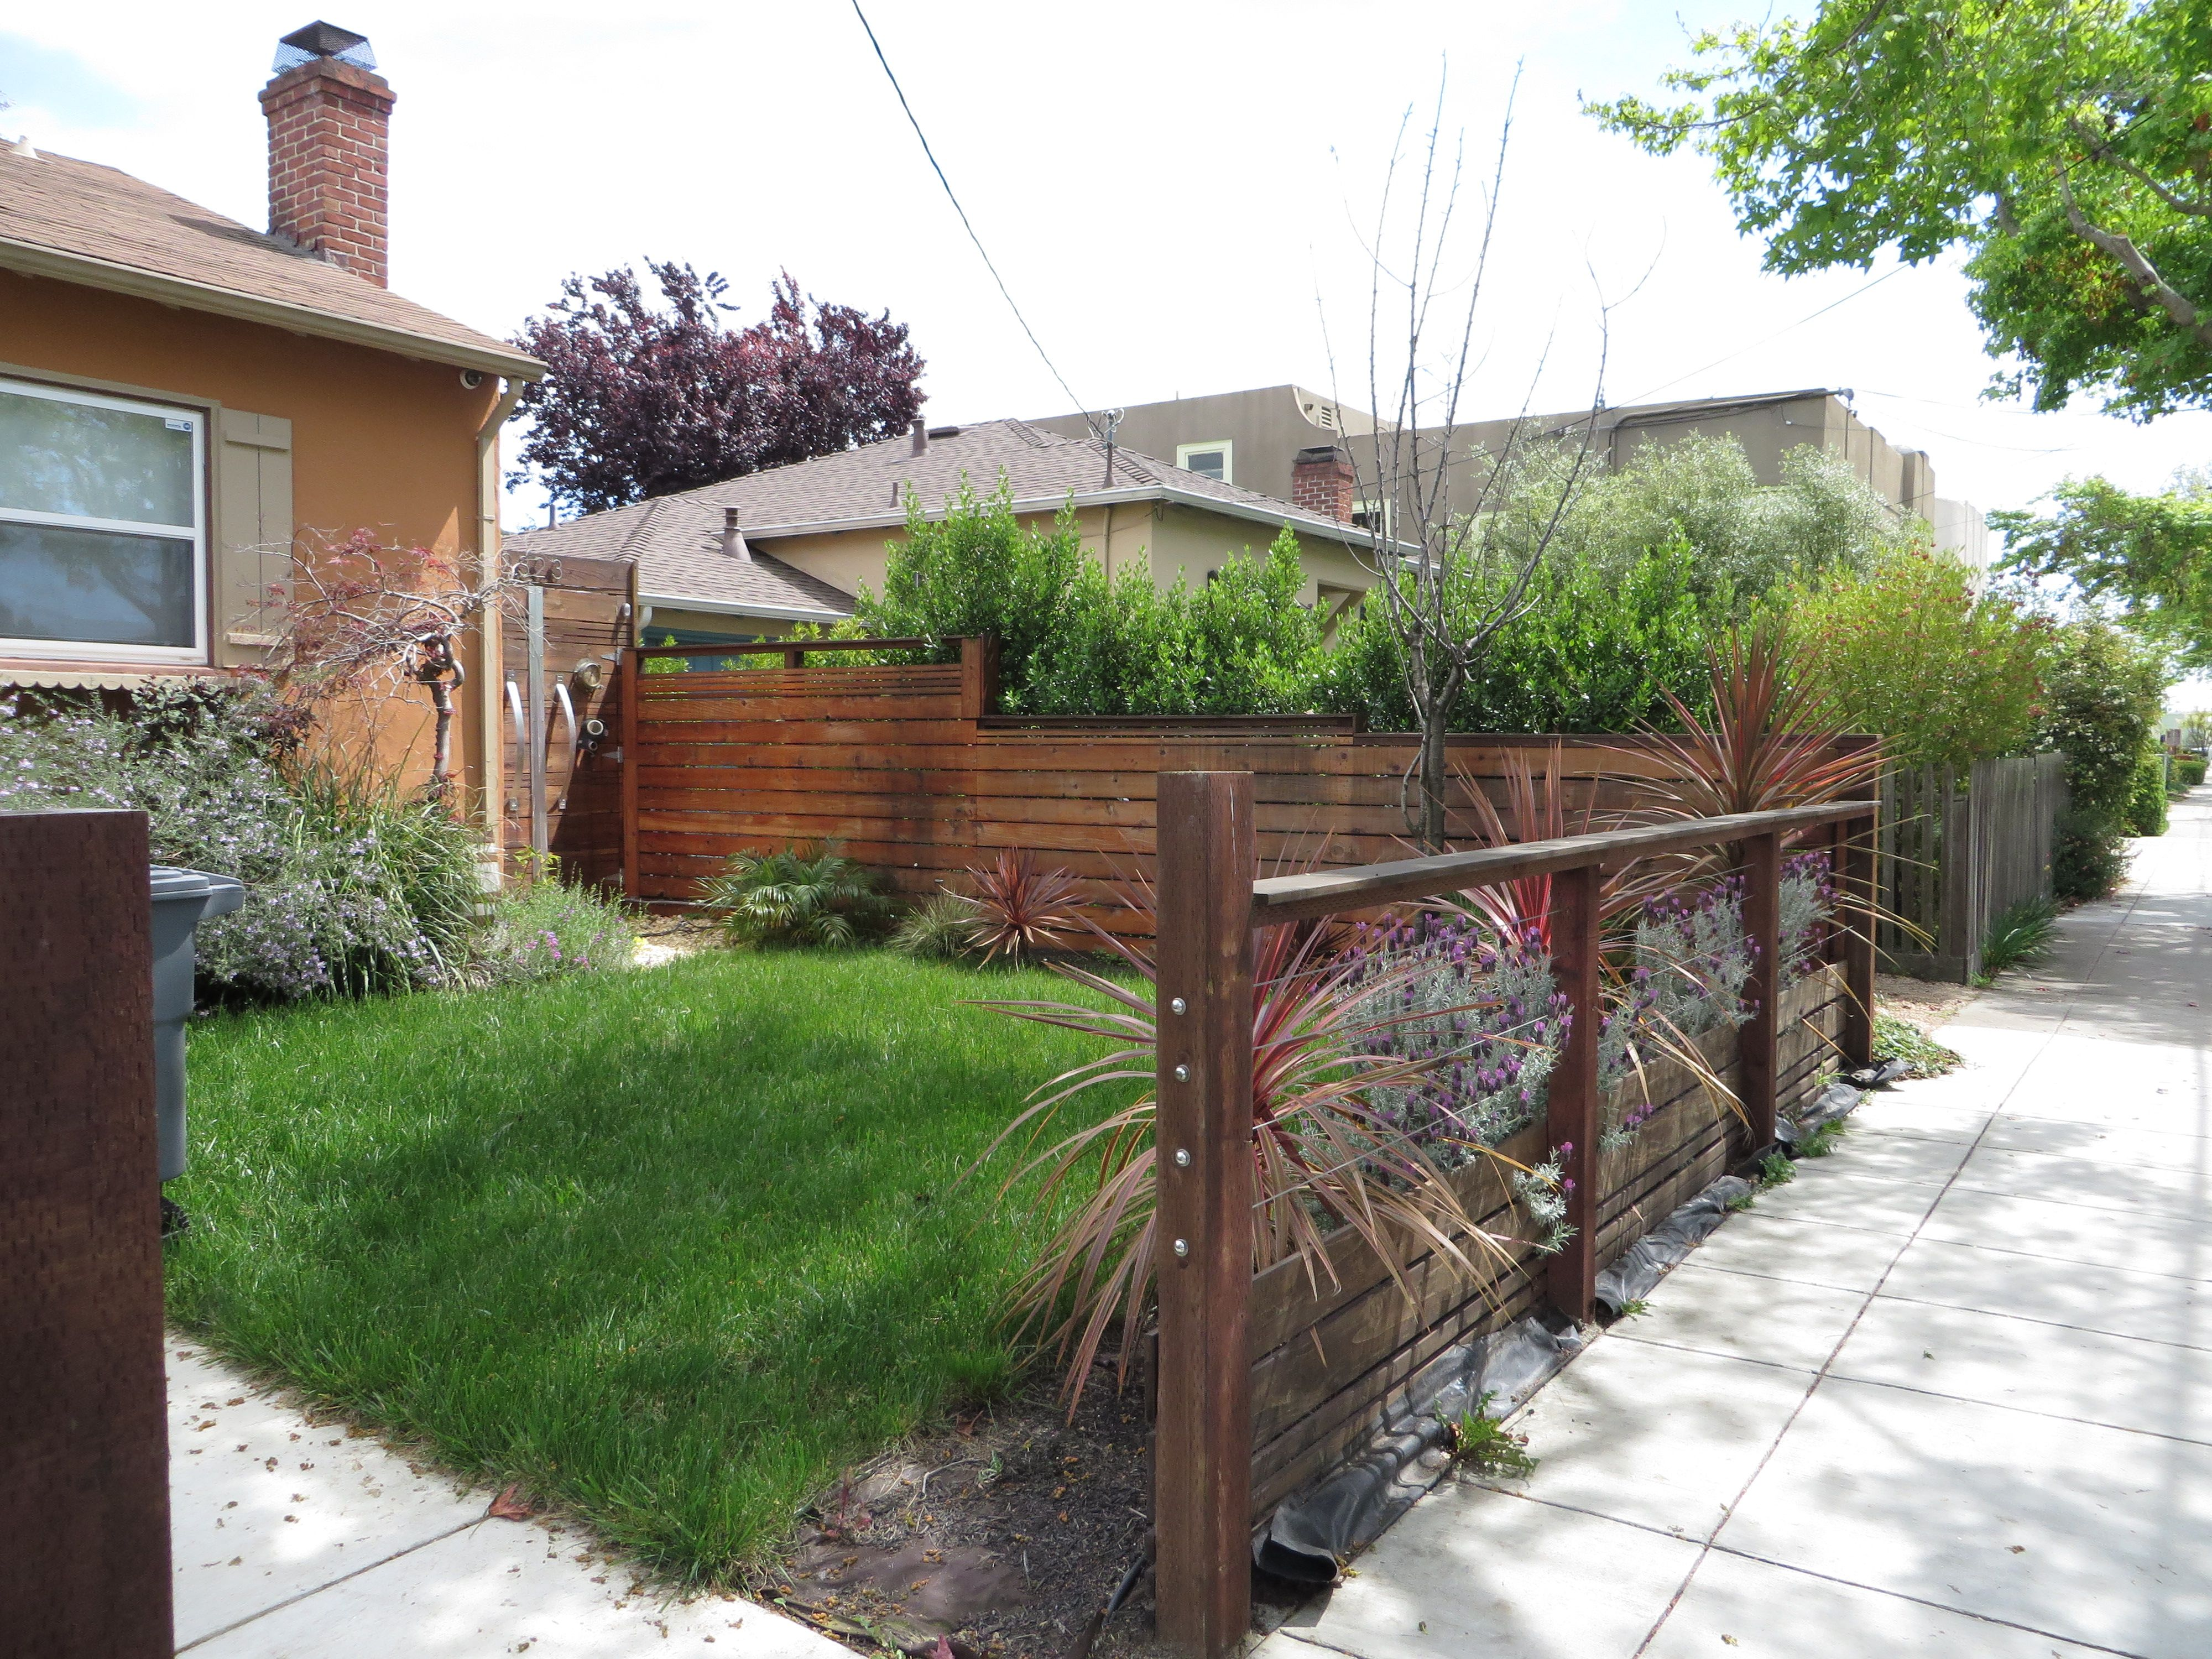 Modern Low Fence With Wood At Bottom Horizontal Wires And Nice Metal Details House Fence Design Fence Design Patio Fence